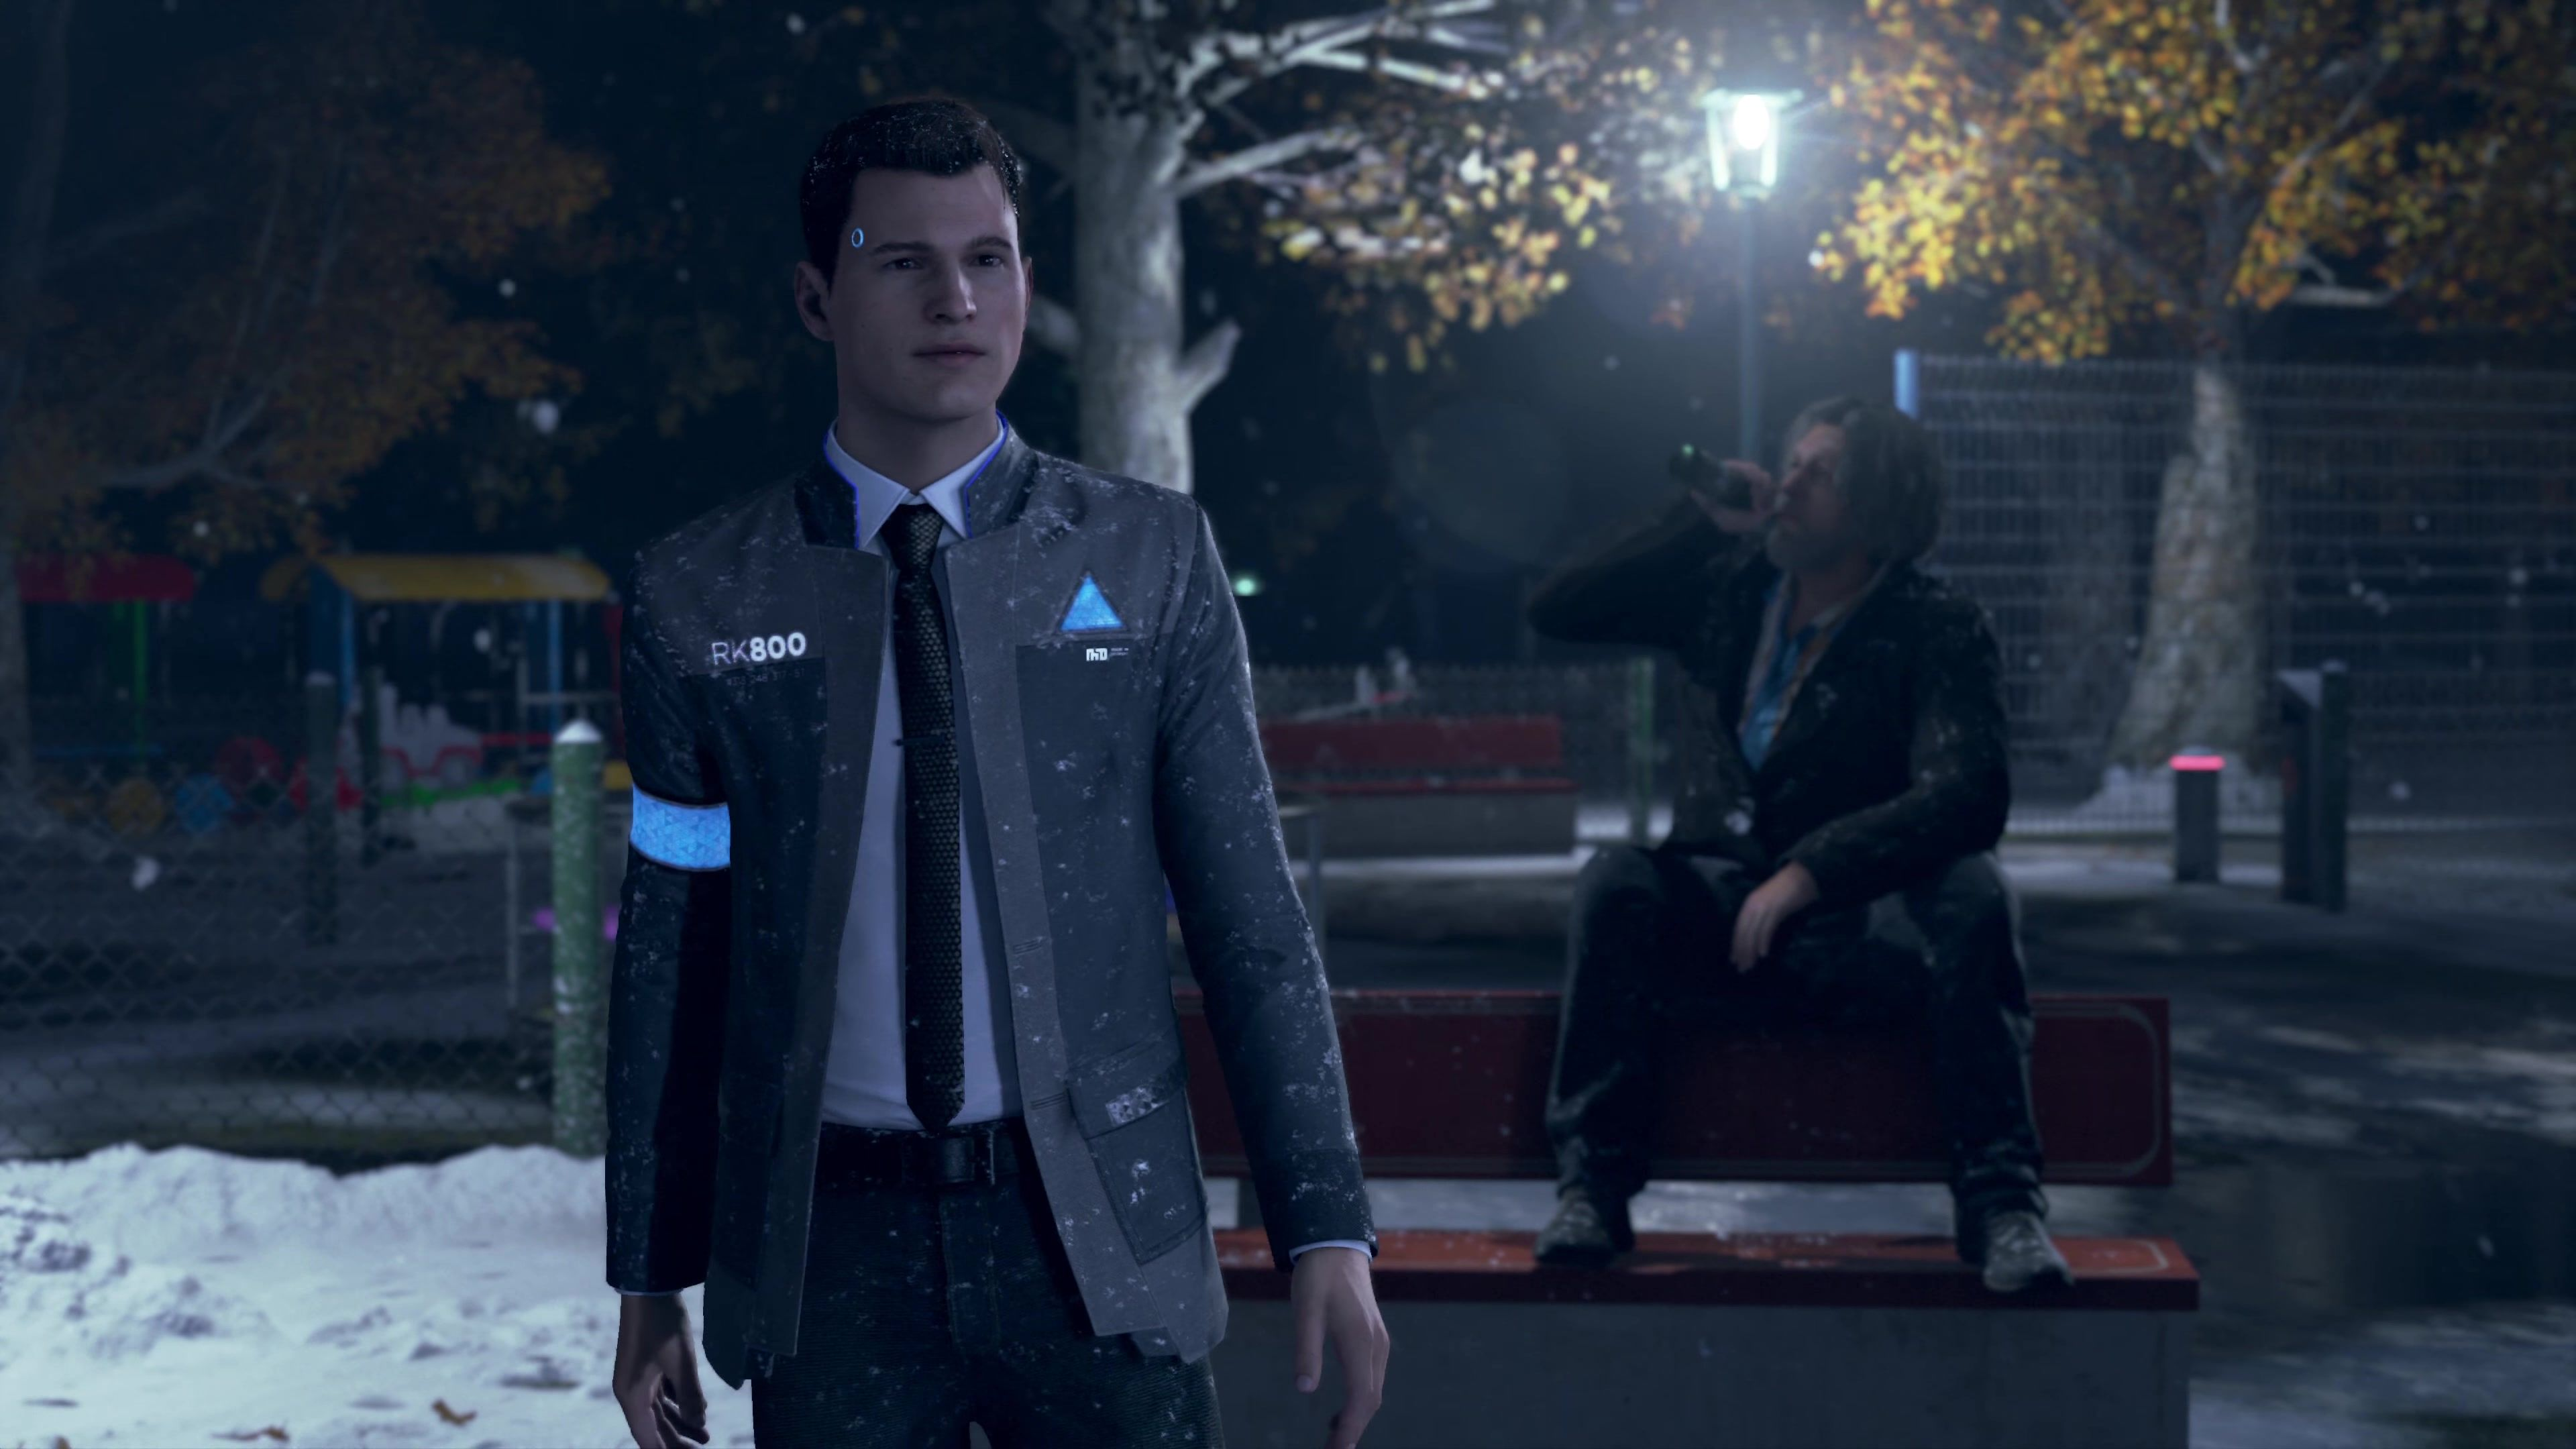 Detroit Become Human Hd Wallpaper Posted By John Sellers